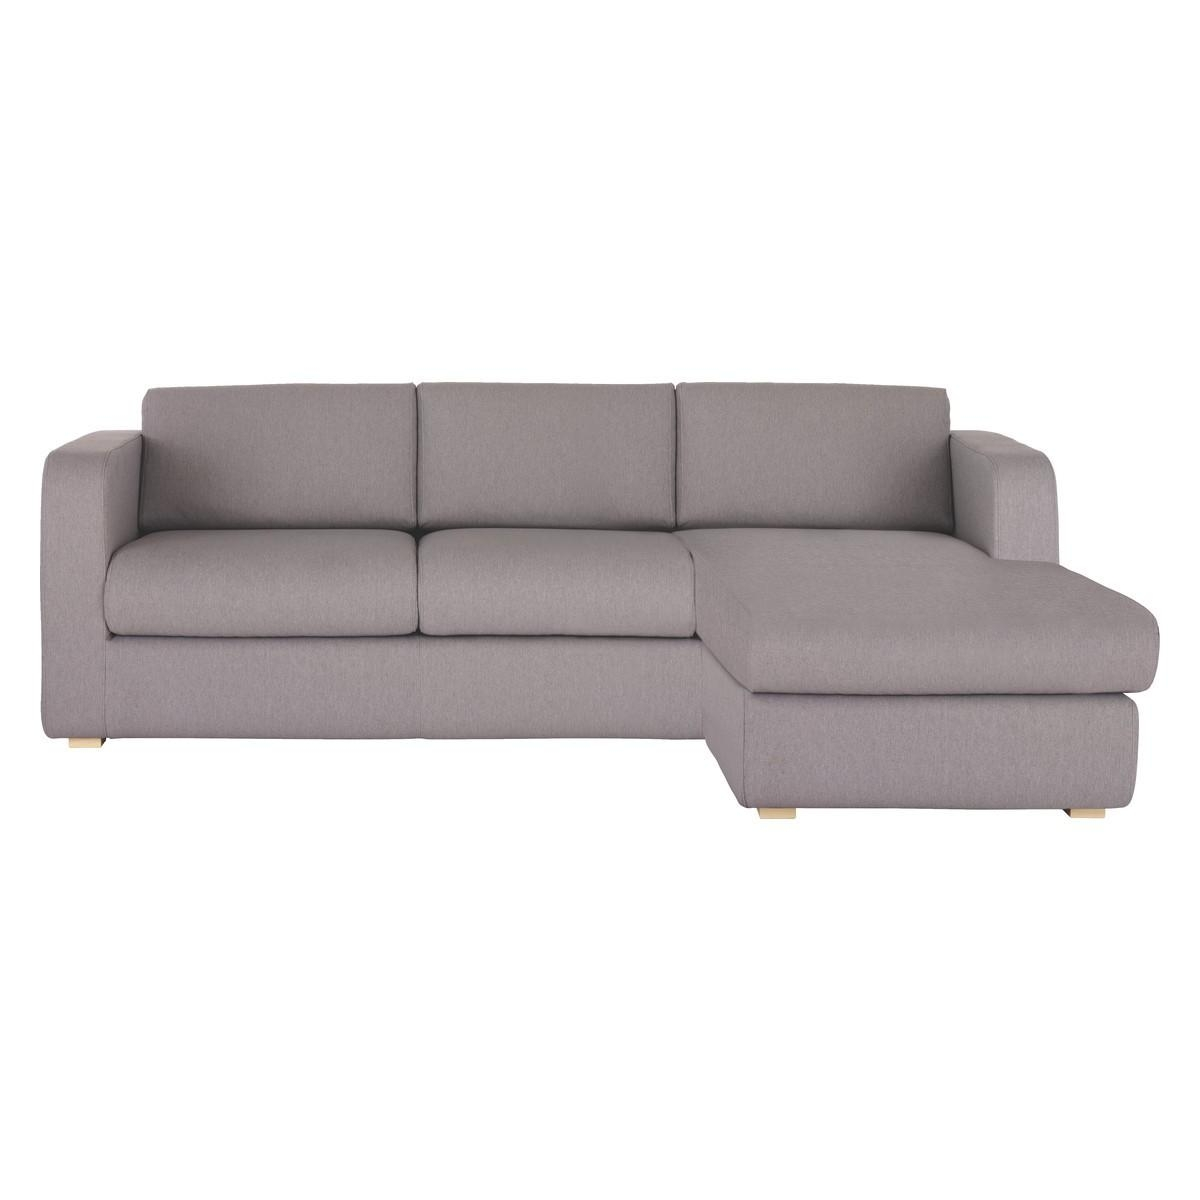 Sofas Center : Chaise Lounge Sofa Wonderful Withaijou World Inside Chaise Sofa Beds With Storage (Photo 8 of 20)